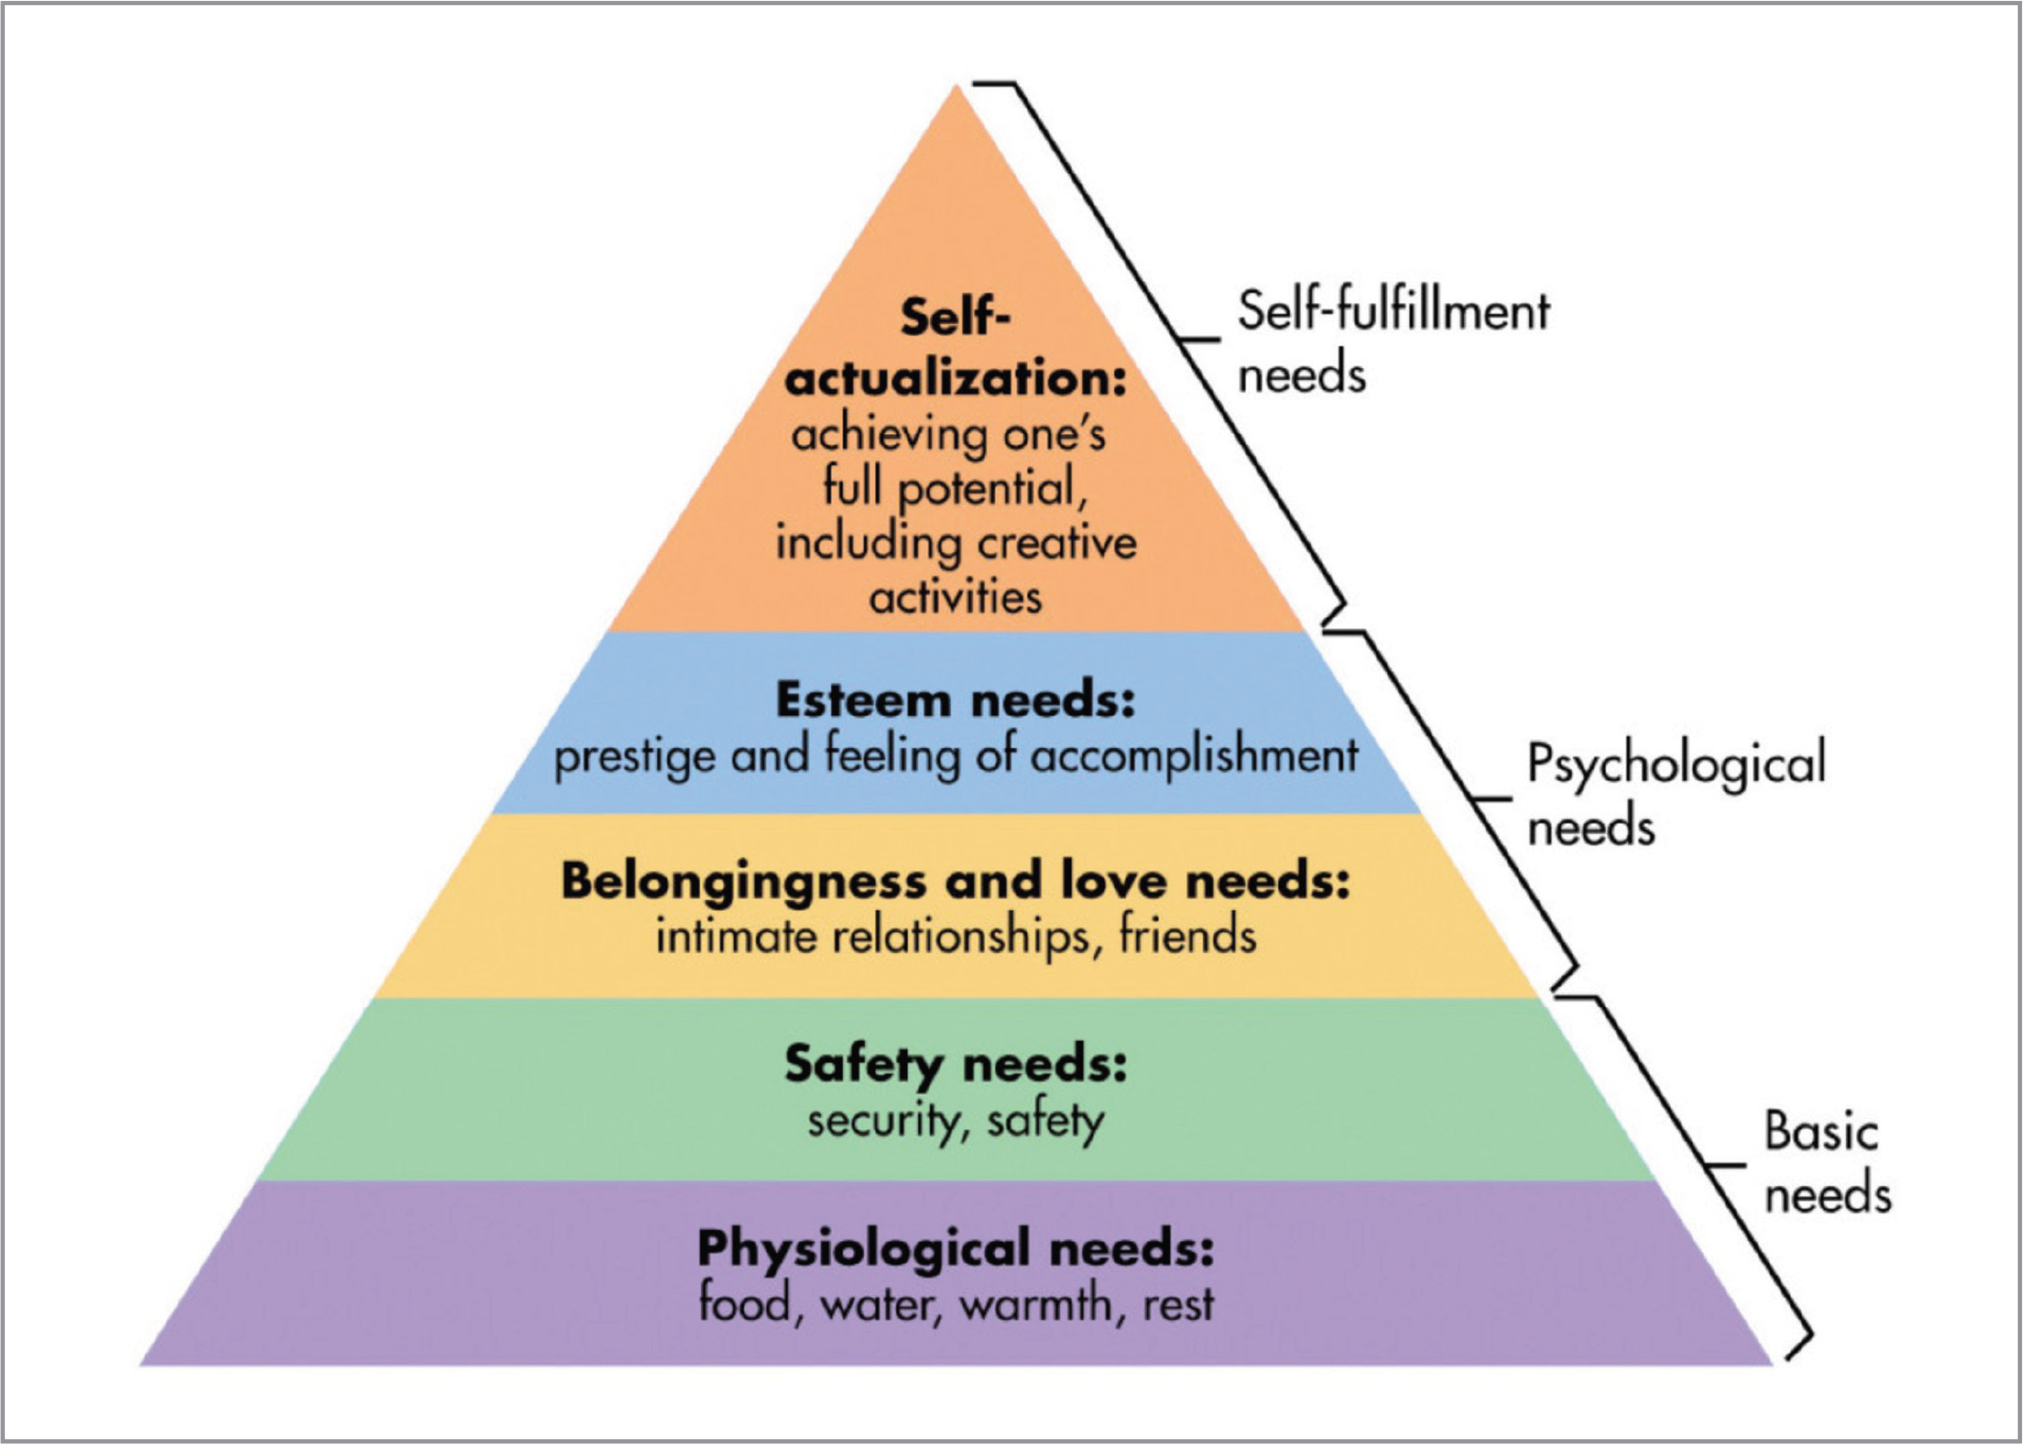 The pyramid shows how each category of needs builds upon the previous. The culture in medicine is often not conducive to layers of this pyramid, and we should try to be aware of its pitfalls. Physical needs such as sleep and food are of high importance and are bases to all other success. Creating an environment where one has plenty of rest, exercise, and nourishment is paramount. Safety and security touch on the need to feel safe in work and home environment in terms of job security, household stability, and financial security. The need for love and belongingness can often be forgotten when professional obligations conflict with personal ones. Fostering relationships with friends, family, and colleagues is extremely important to balance. These require concerted effort but are cornerstones to personal well-being. Feelings of accomplishment and esteem are attainable during training as goals are reached, but during clinical practice this can be lost in daily routine. Setting goals and milestones and having mentors is important. A sense of accomplishment can come from helping improve or preserve patients' vision. Others may feel accomplished by being active in professional organizations and within the hospital or practice. Academic endeavors (such as publications or recognition by the scientific community) can be motivators. Financial health is important, but purely financial metrics of success do not lead to long-lasting satisfaction. The path to self-actualization is a path of successes, failures, tribulations, and personal growth. A mindful approach to everyday, routine interactions with patients, staff, and colleagues will go a long way.